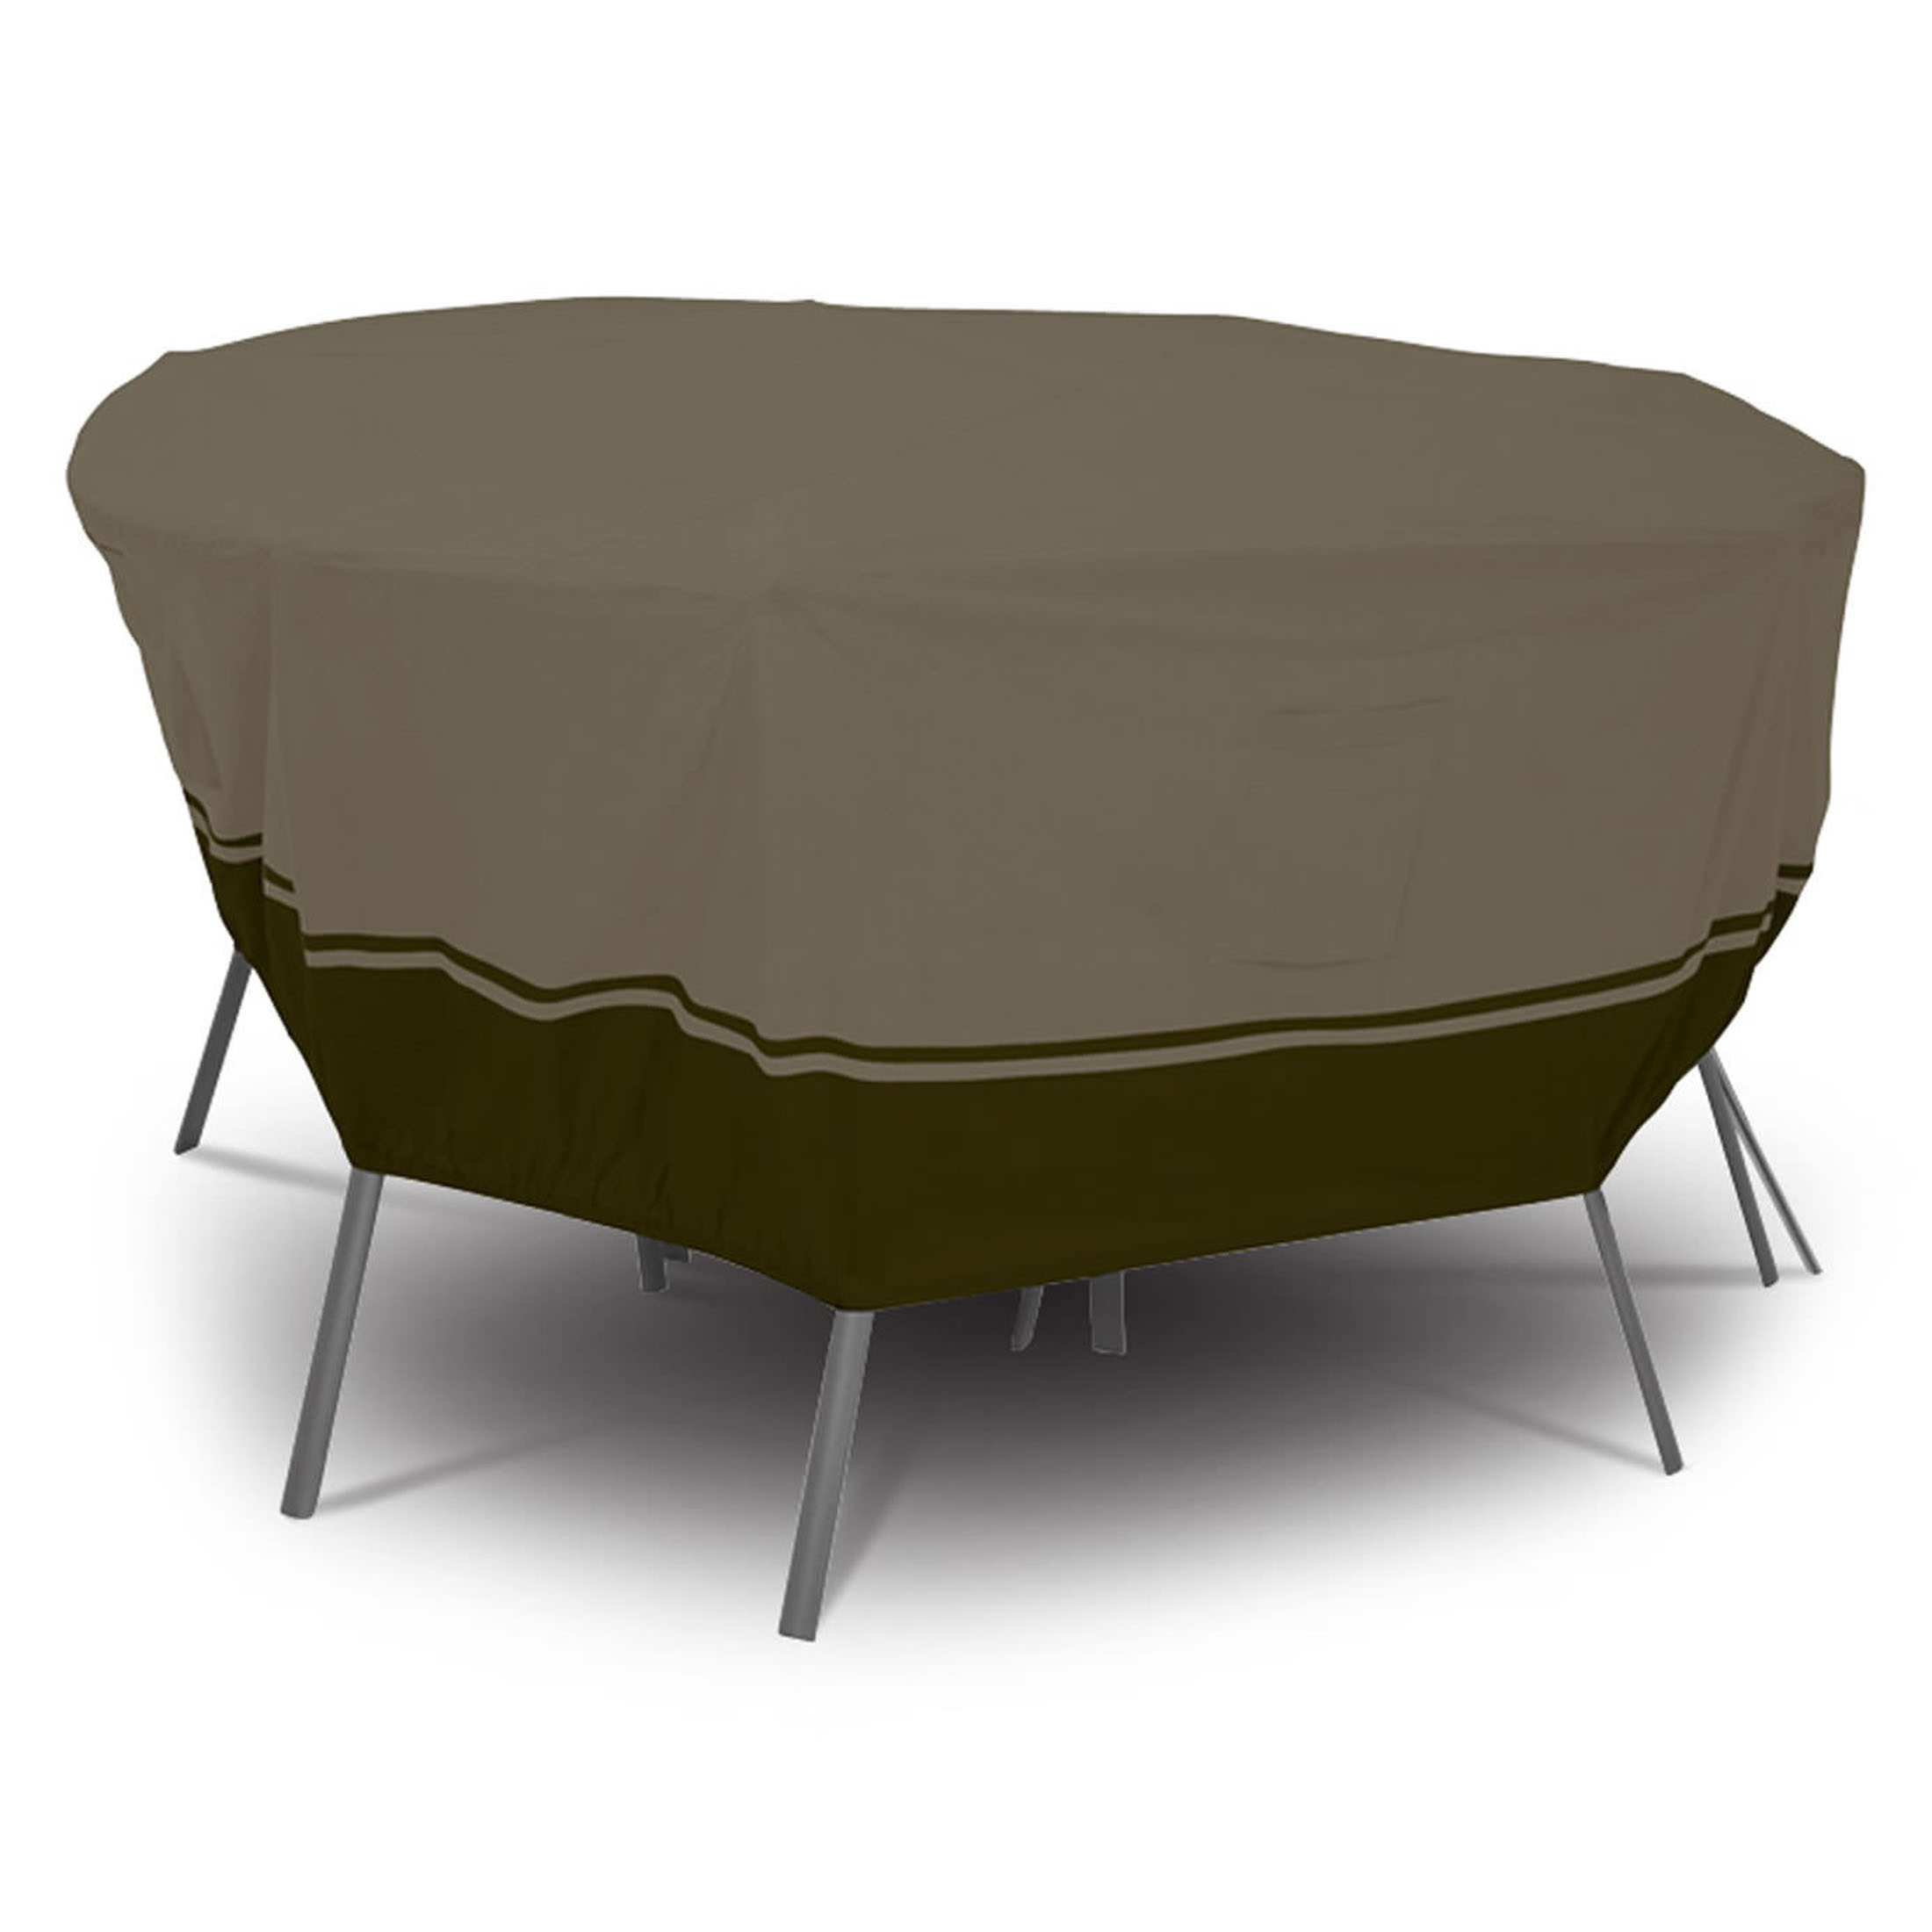 Classic Accessories Villa Medium Round Table and Chair Set Cover